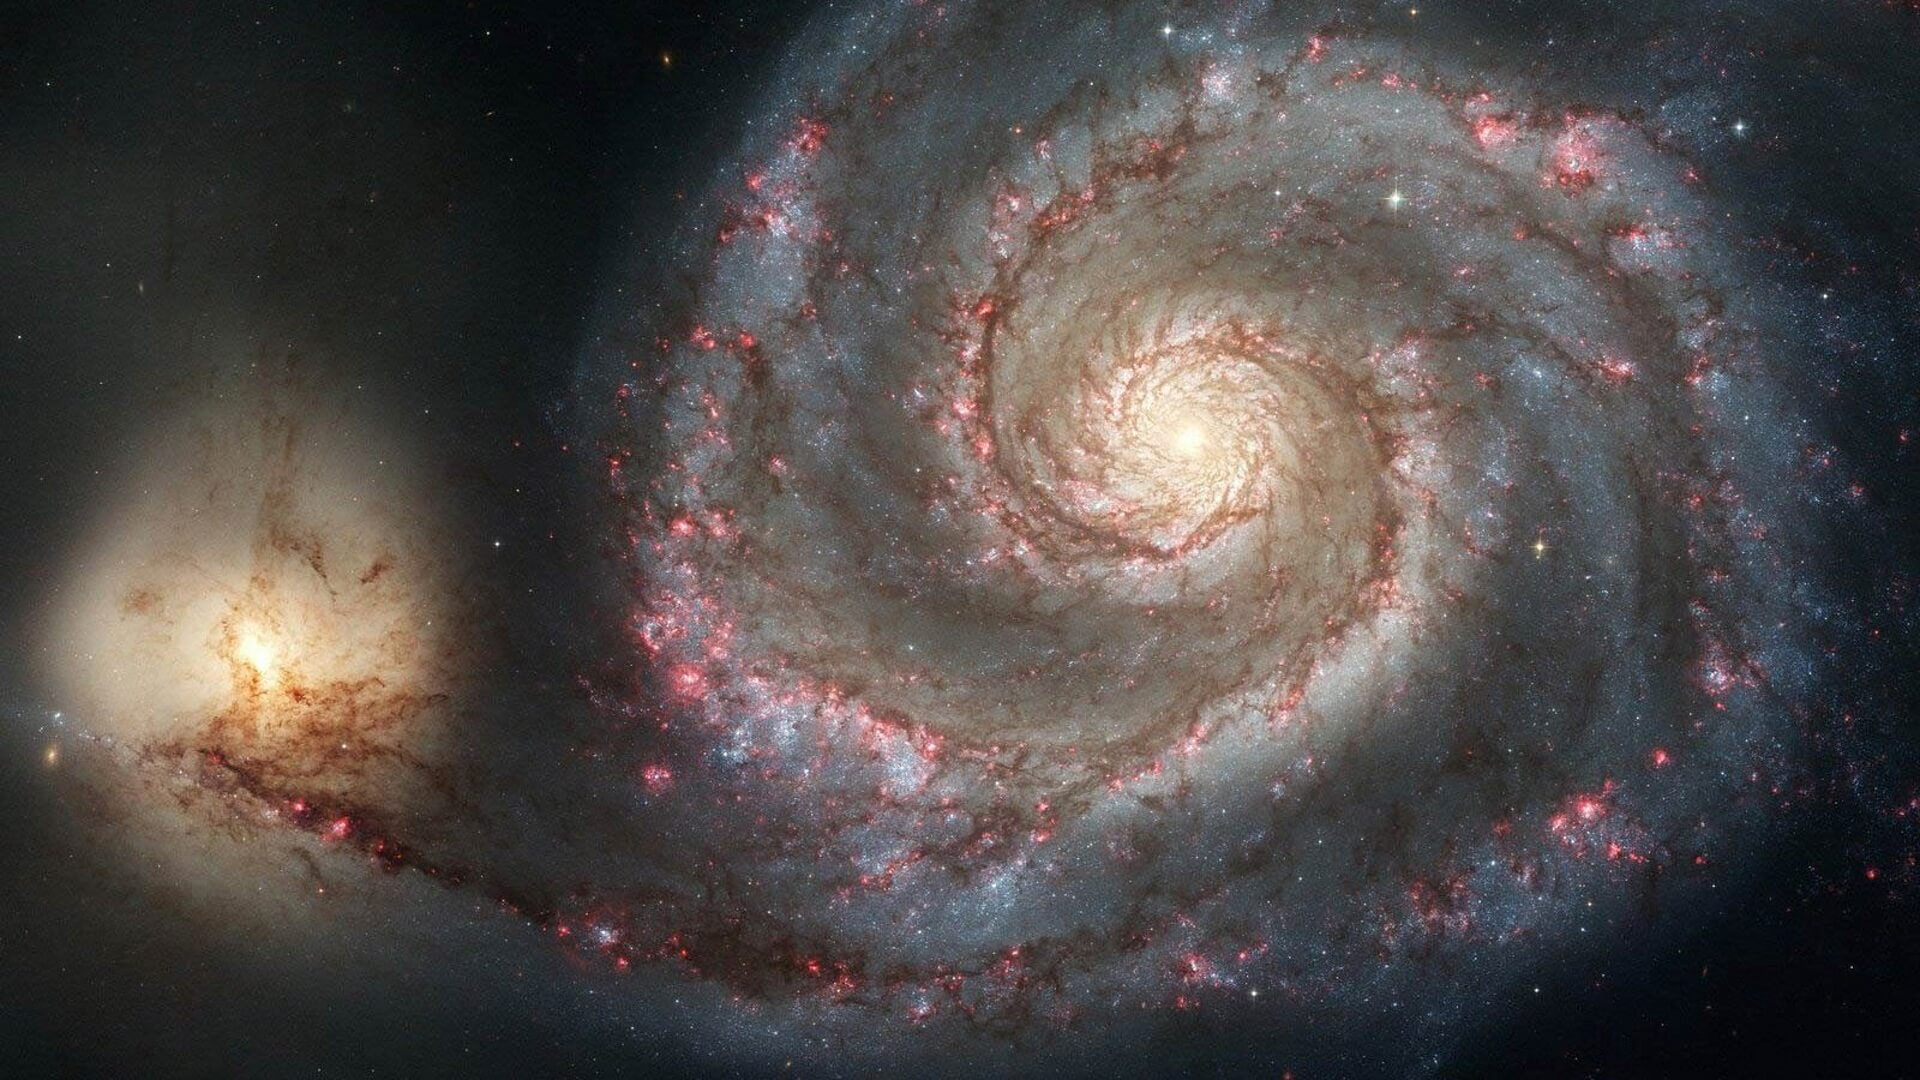 Why are some galaxies spiral shaped?